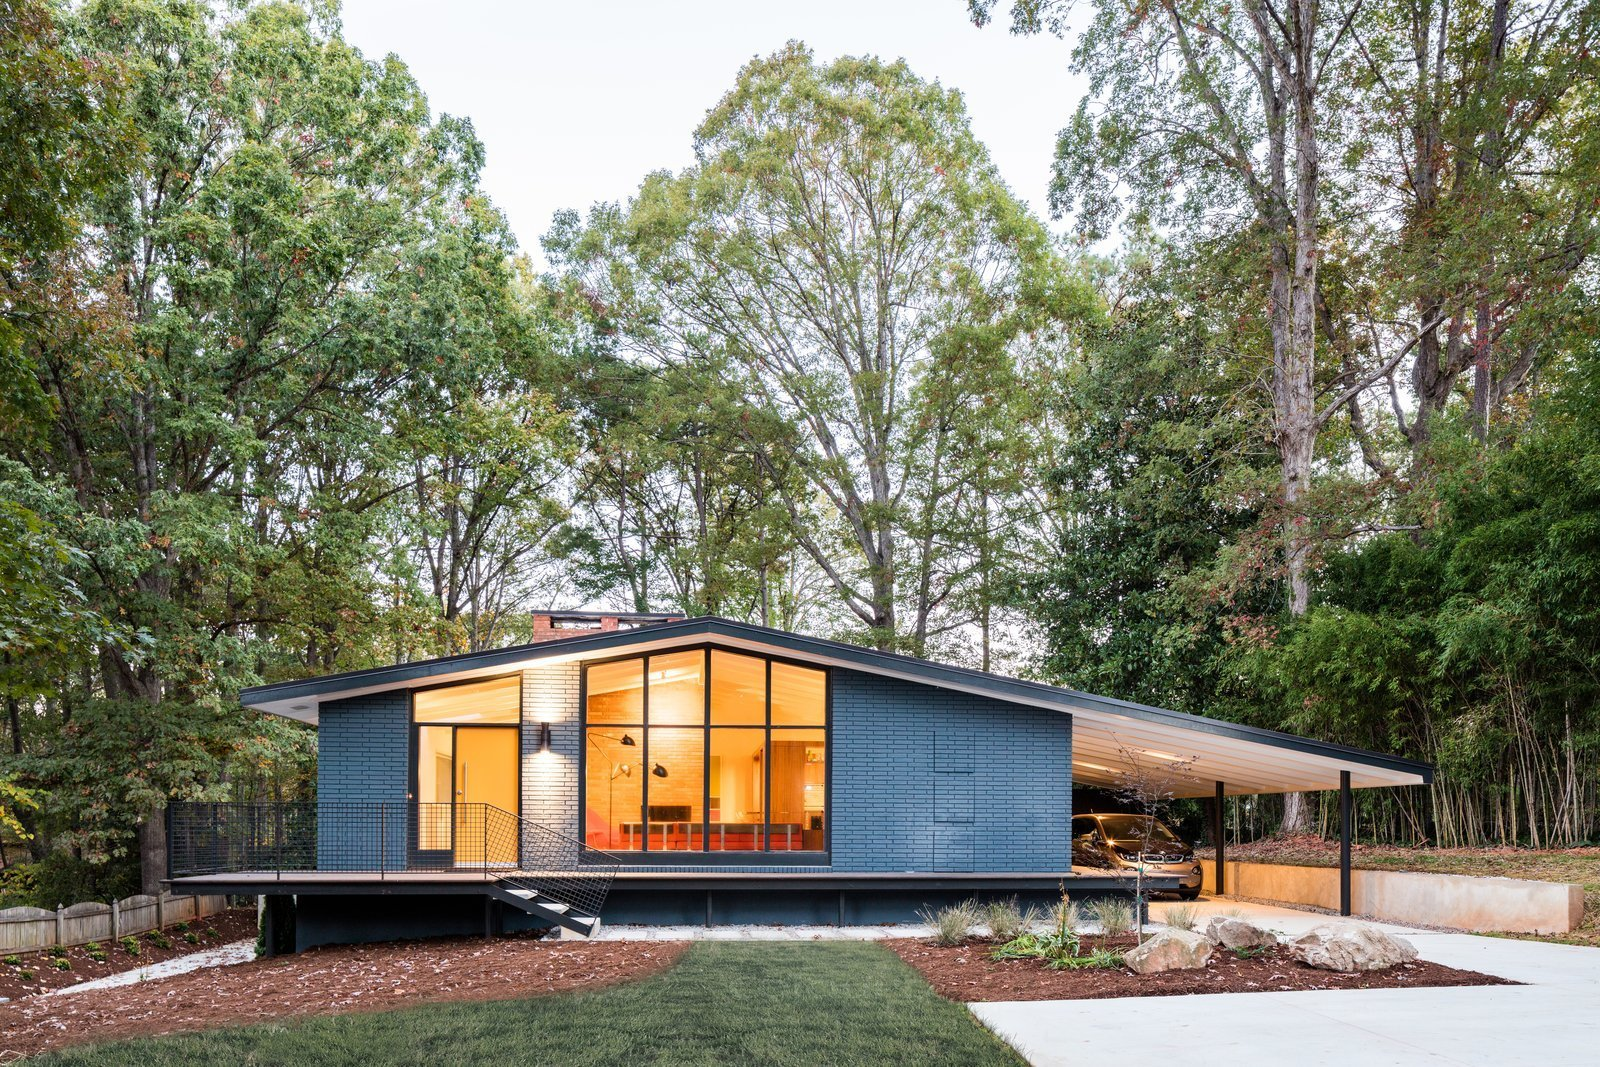 Photo 9 Of 11 In 10 Timeless Midcentury Modern Homes   Dwell